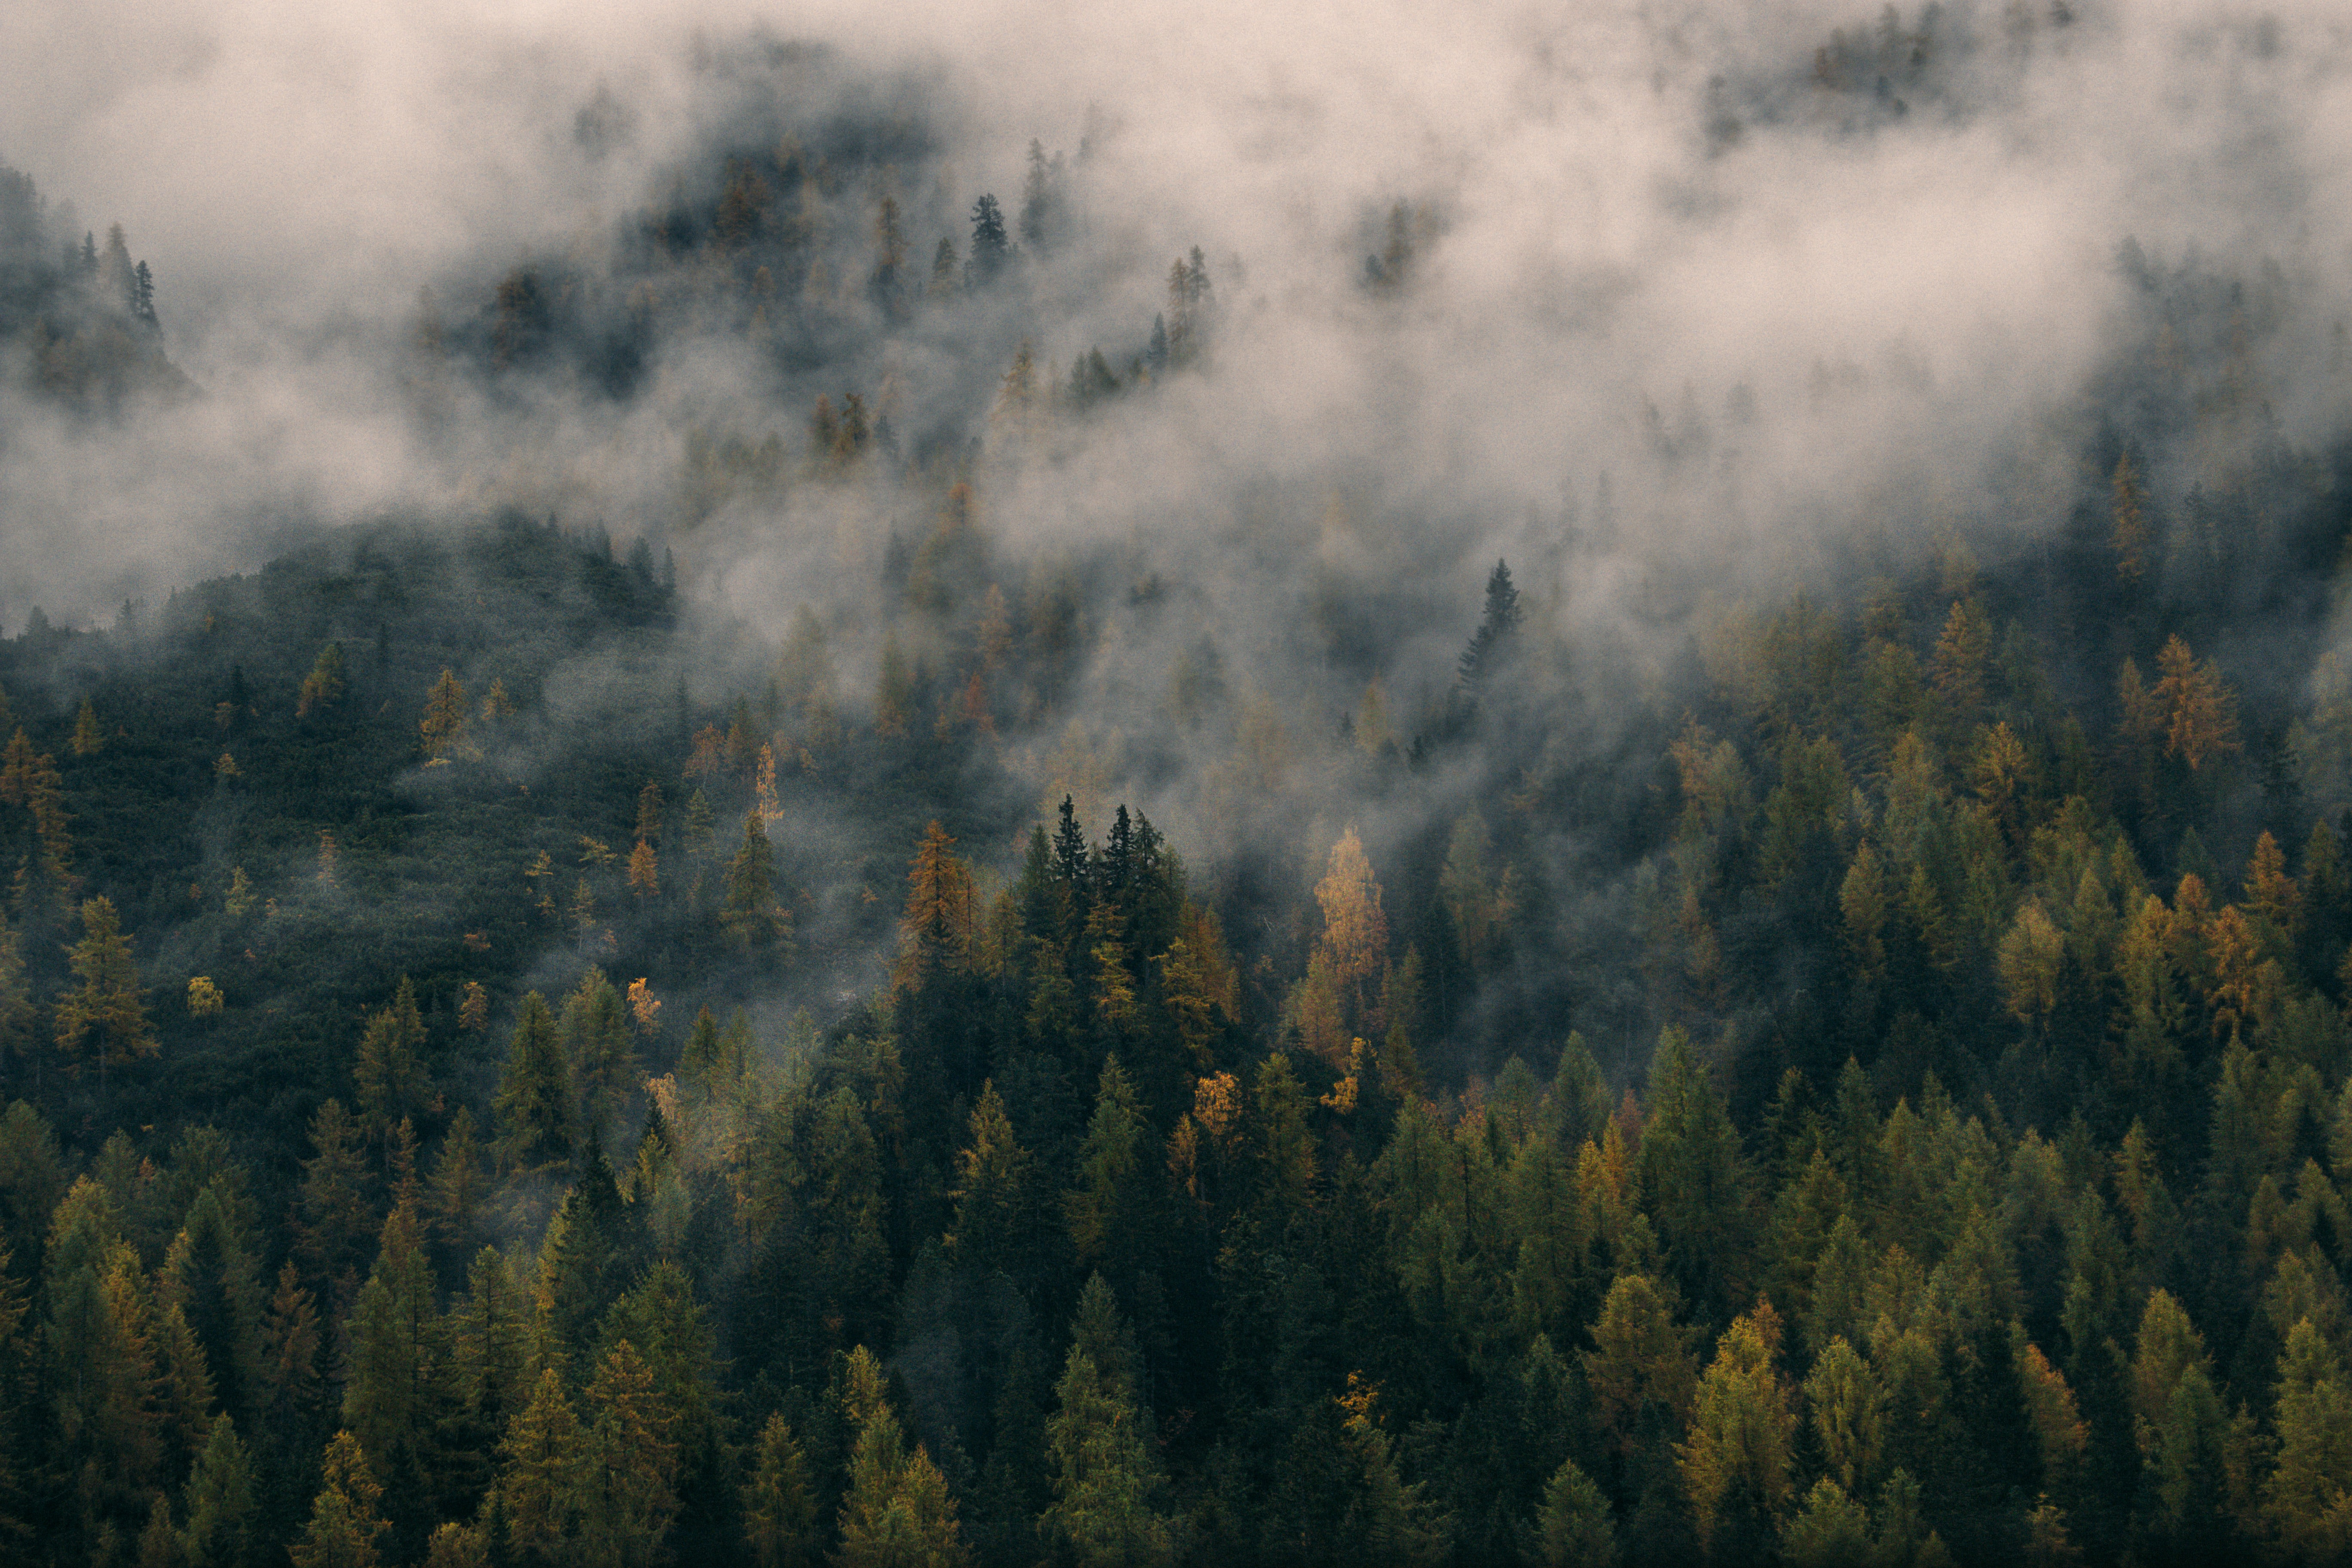 A forest of pine trees covered in mist and fog in the Dolomites